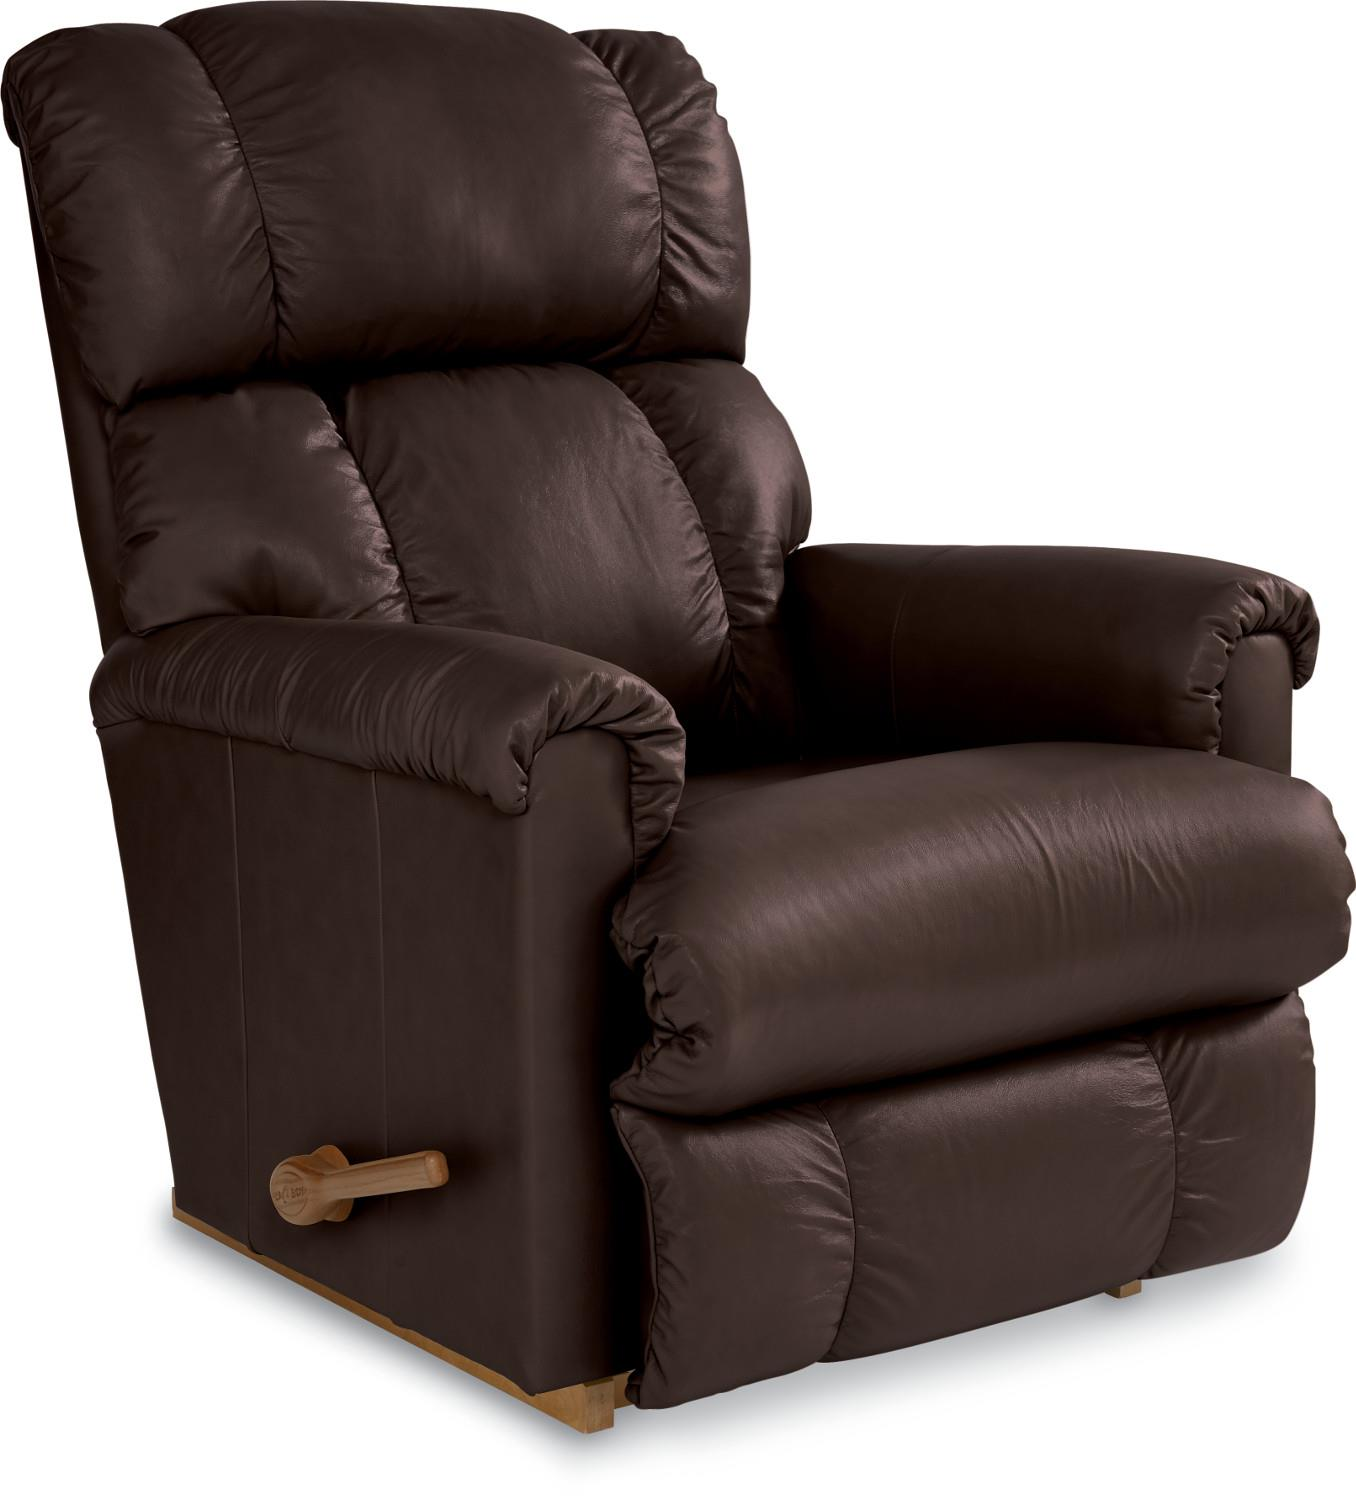 La-Z-Boy Pinnacle Expresso Leather Rocker Recliner - Item Number 010-  sc 1 st  Great American Home Store & La-Z-Boy Pinnacle Expresso Leather Rocker Recliner - Great ... islam-shia.org